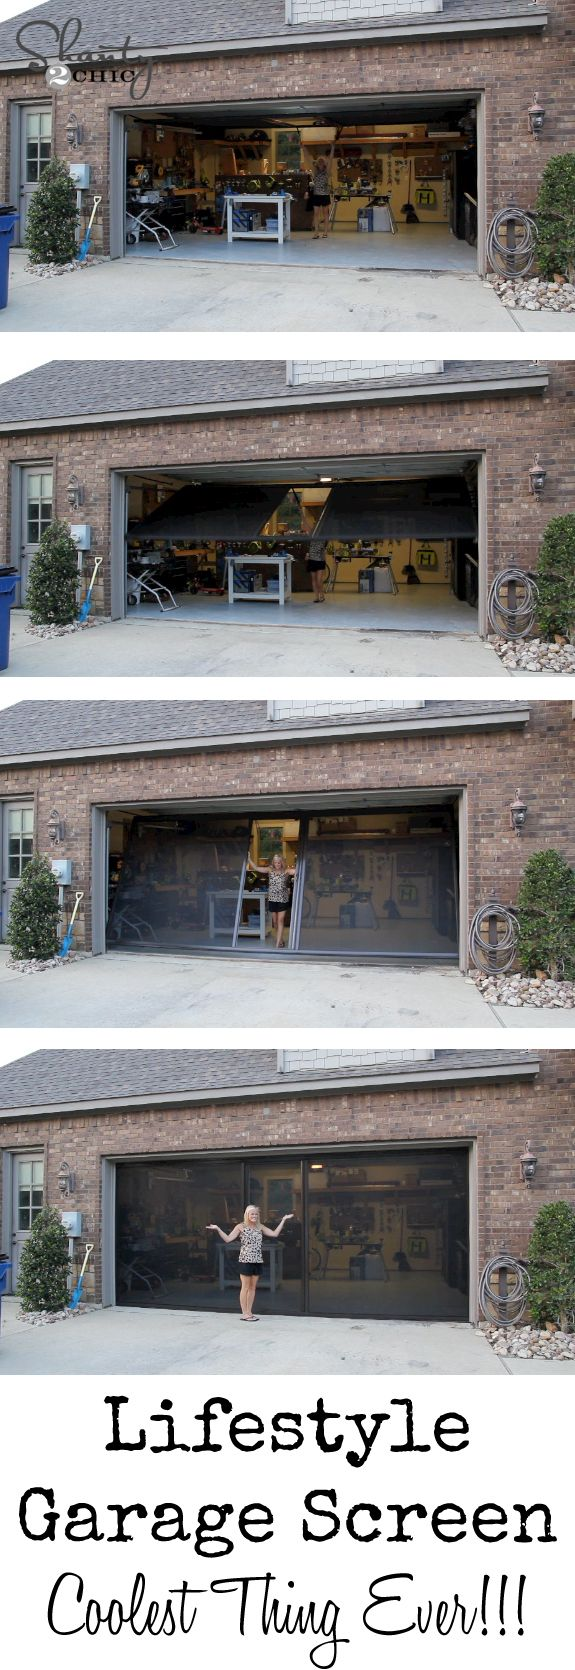 Check Out My New Garage Screen So Awesome Garage Screen Door Garage Decor Garage